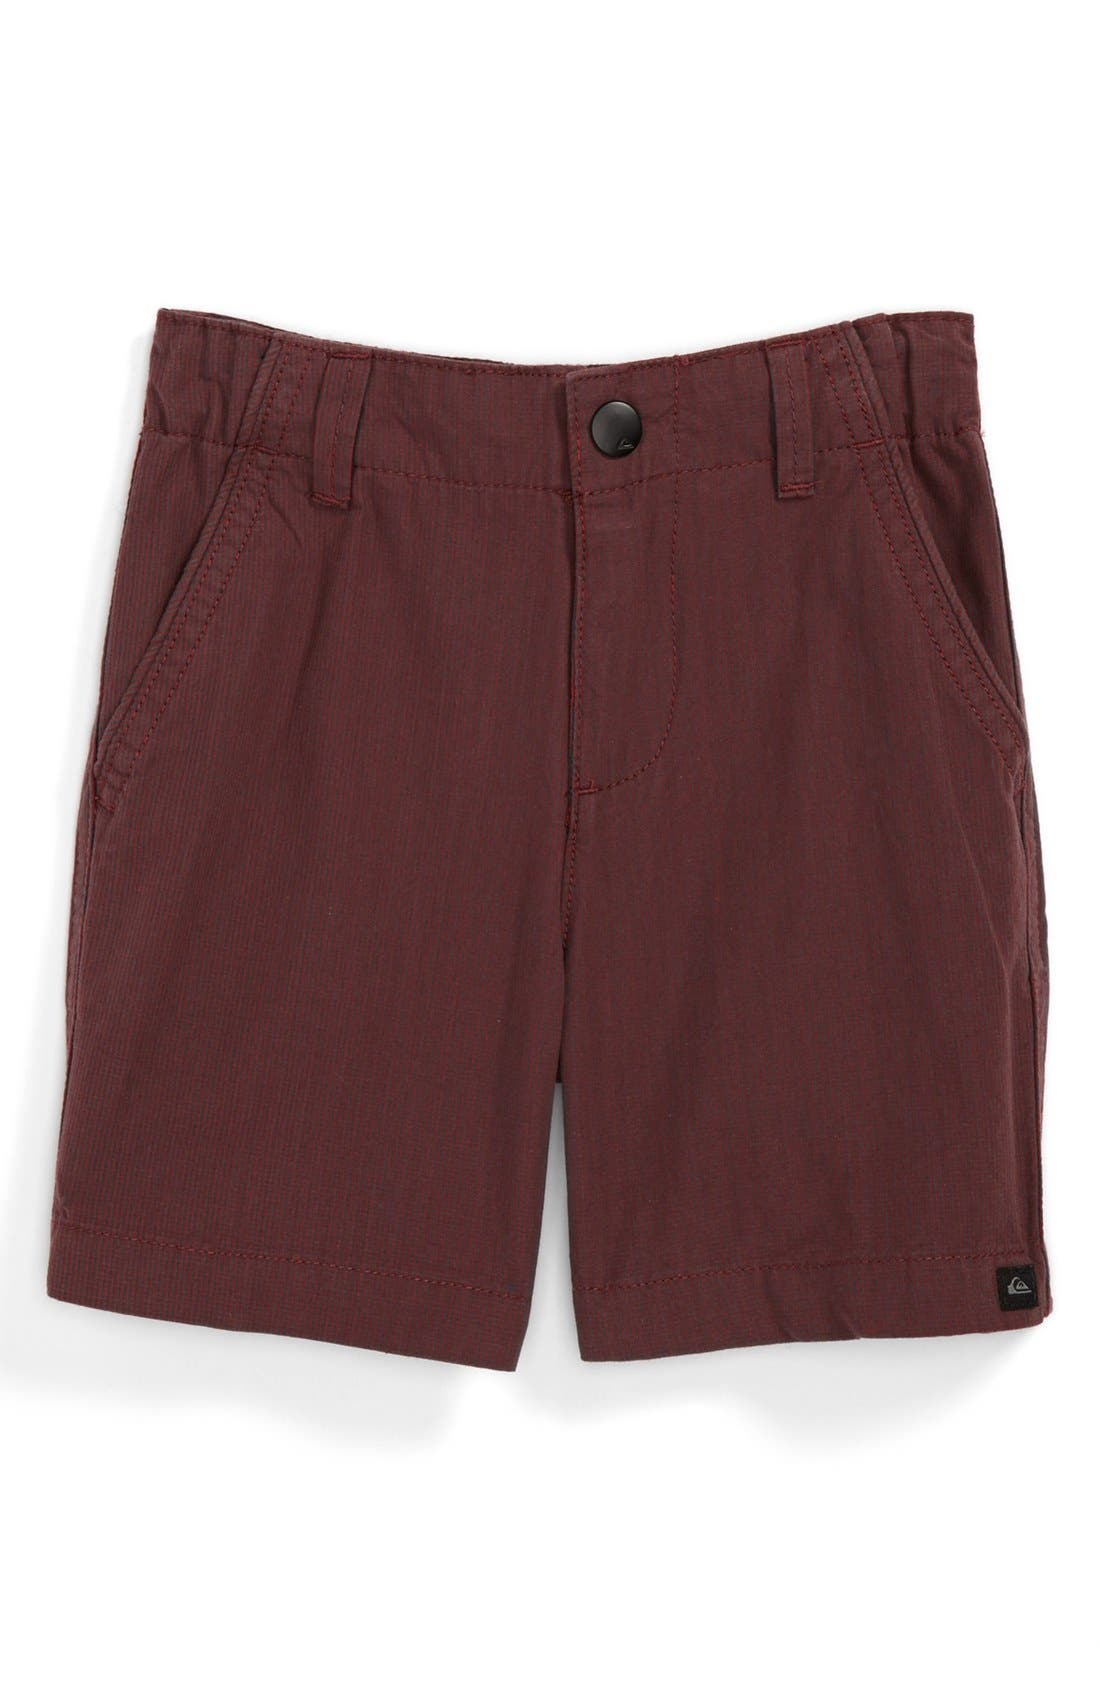 Alternate Image 1 Selected - Quiksilver 'Nugget' Shorts (Baby Boys)